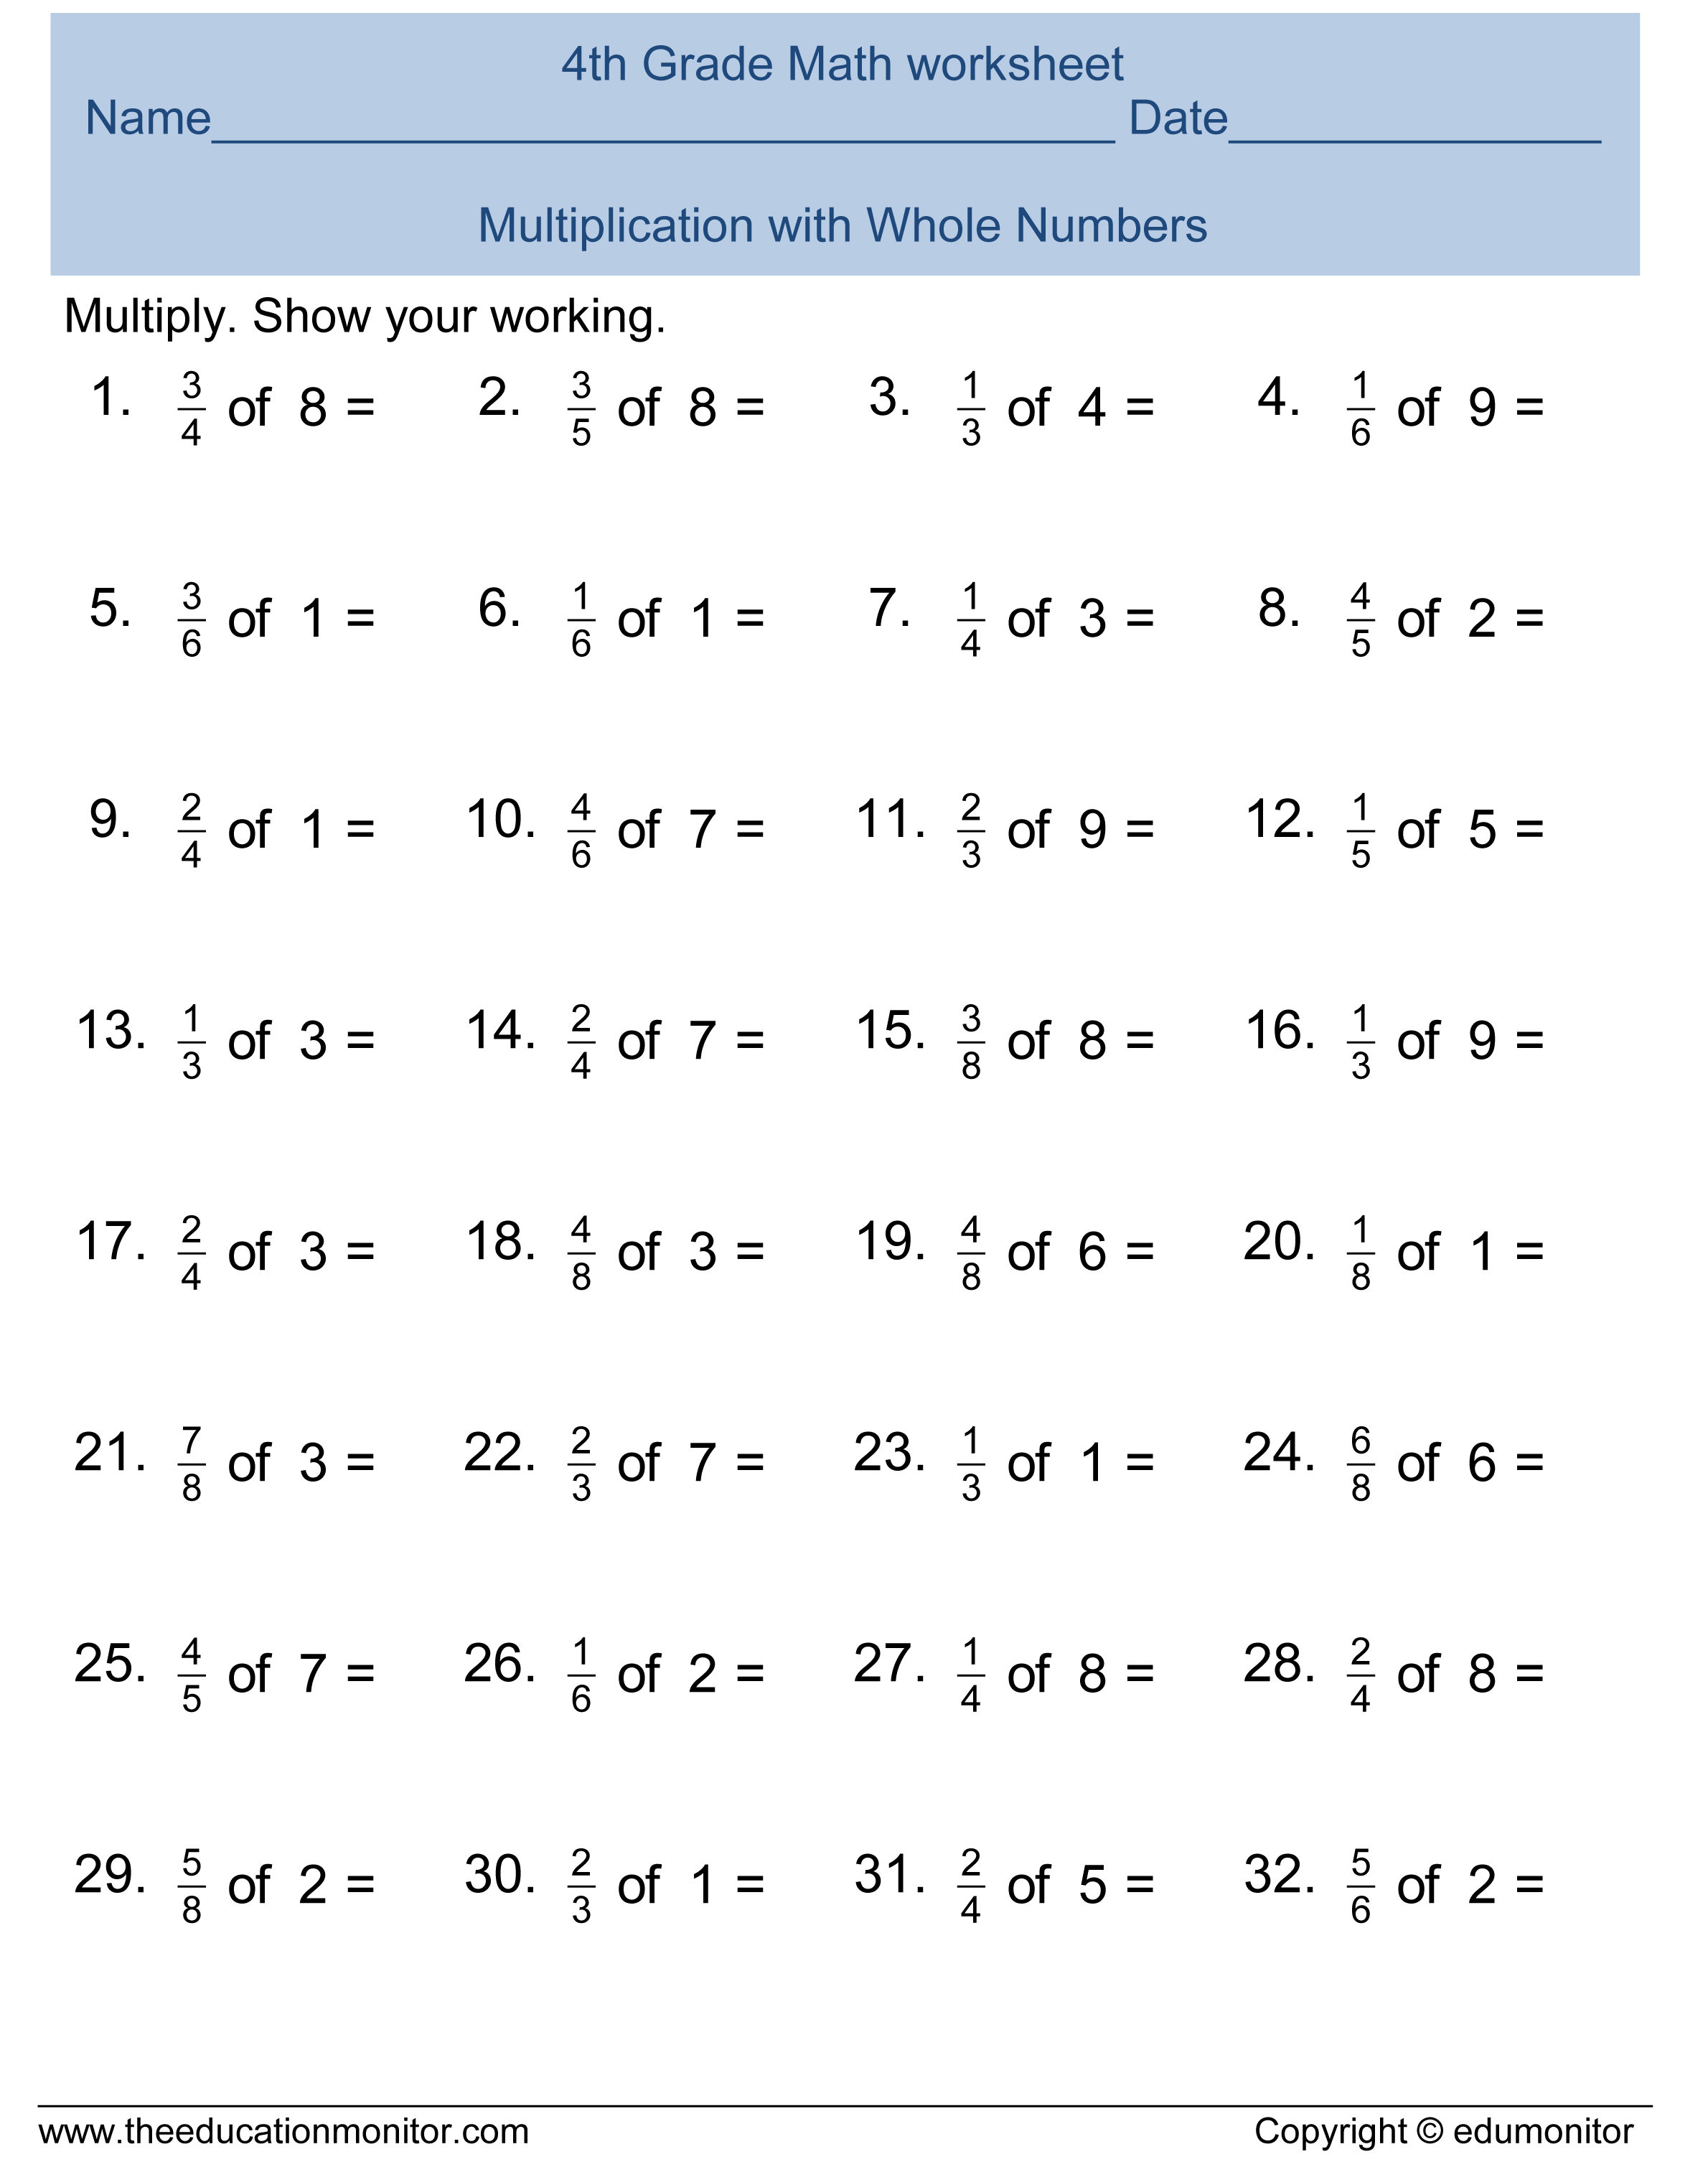 Printables Math Worksheets For Fourth Grade math worksheets 4th grade subtraction 4 free printable k5 learning